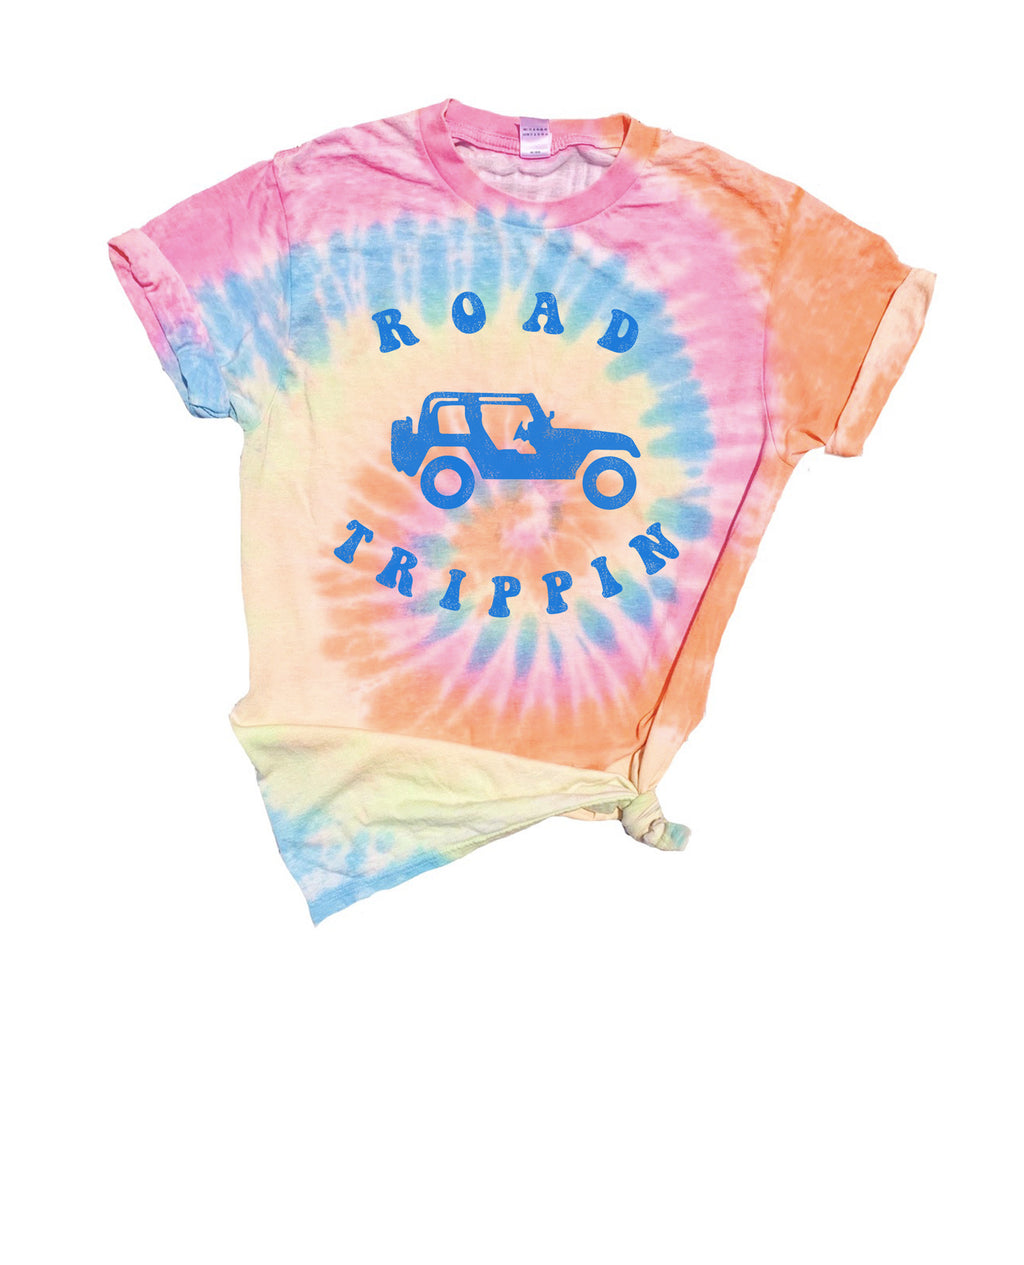 Peace, Love, Jeep. Show your love for Jeeps in this super cute women's jeep shirt! This super soft and comfy Jeep tshirt is the perfect gift for a Jeep lover in your life or for yourself!